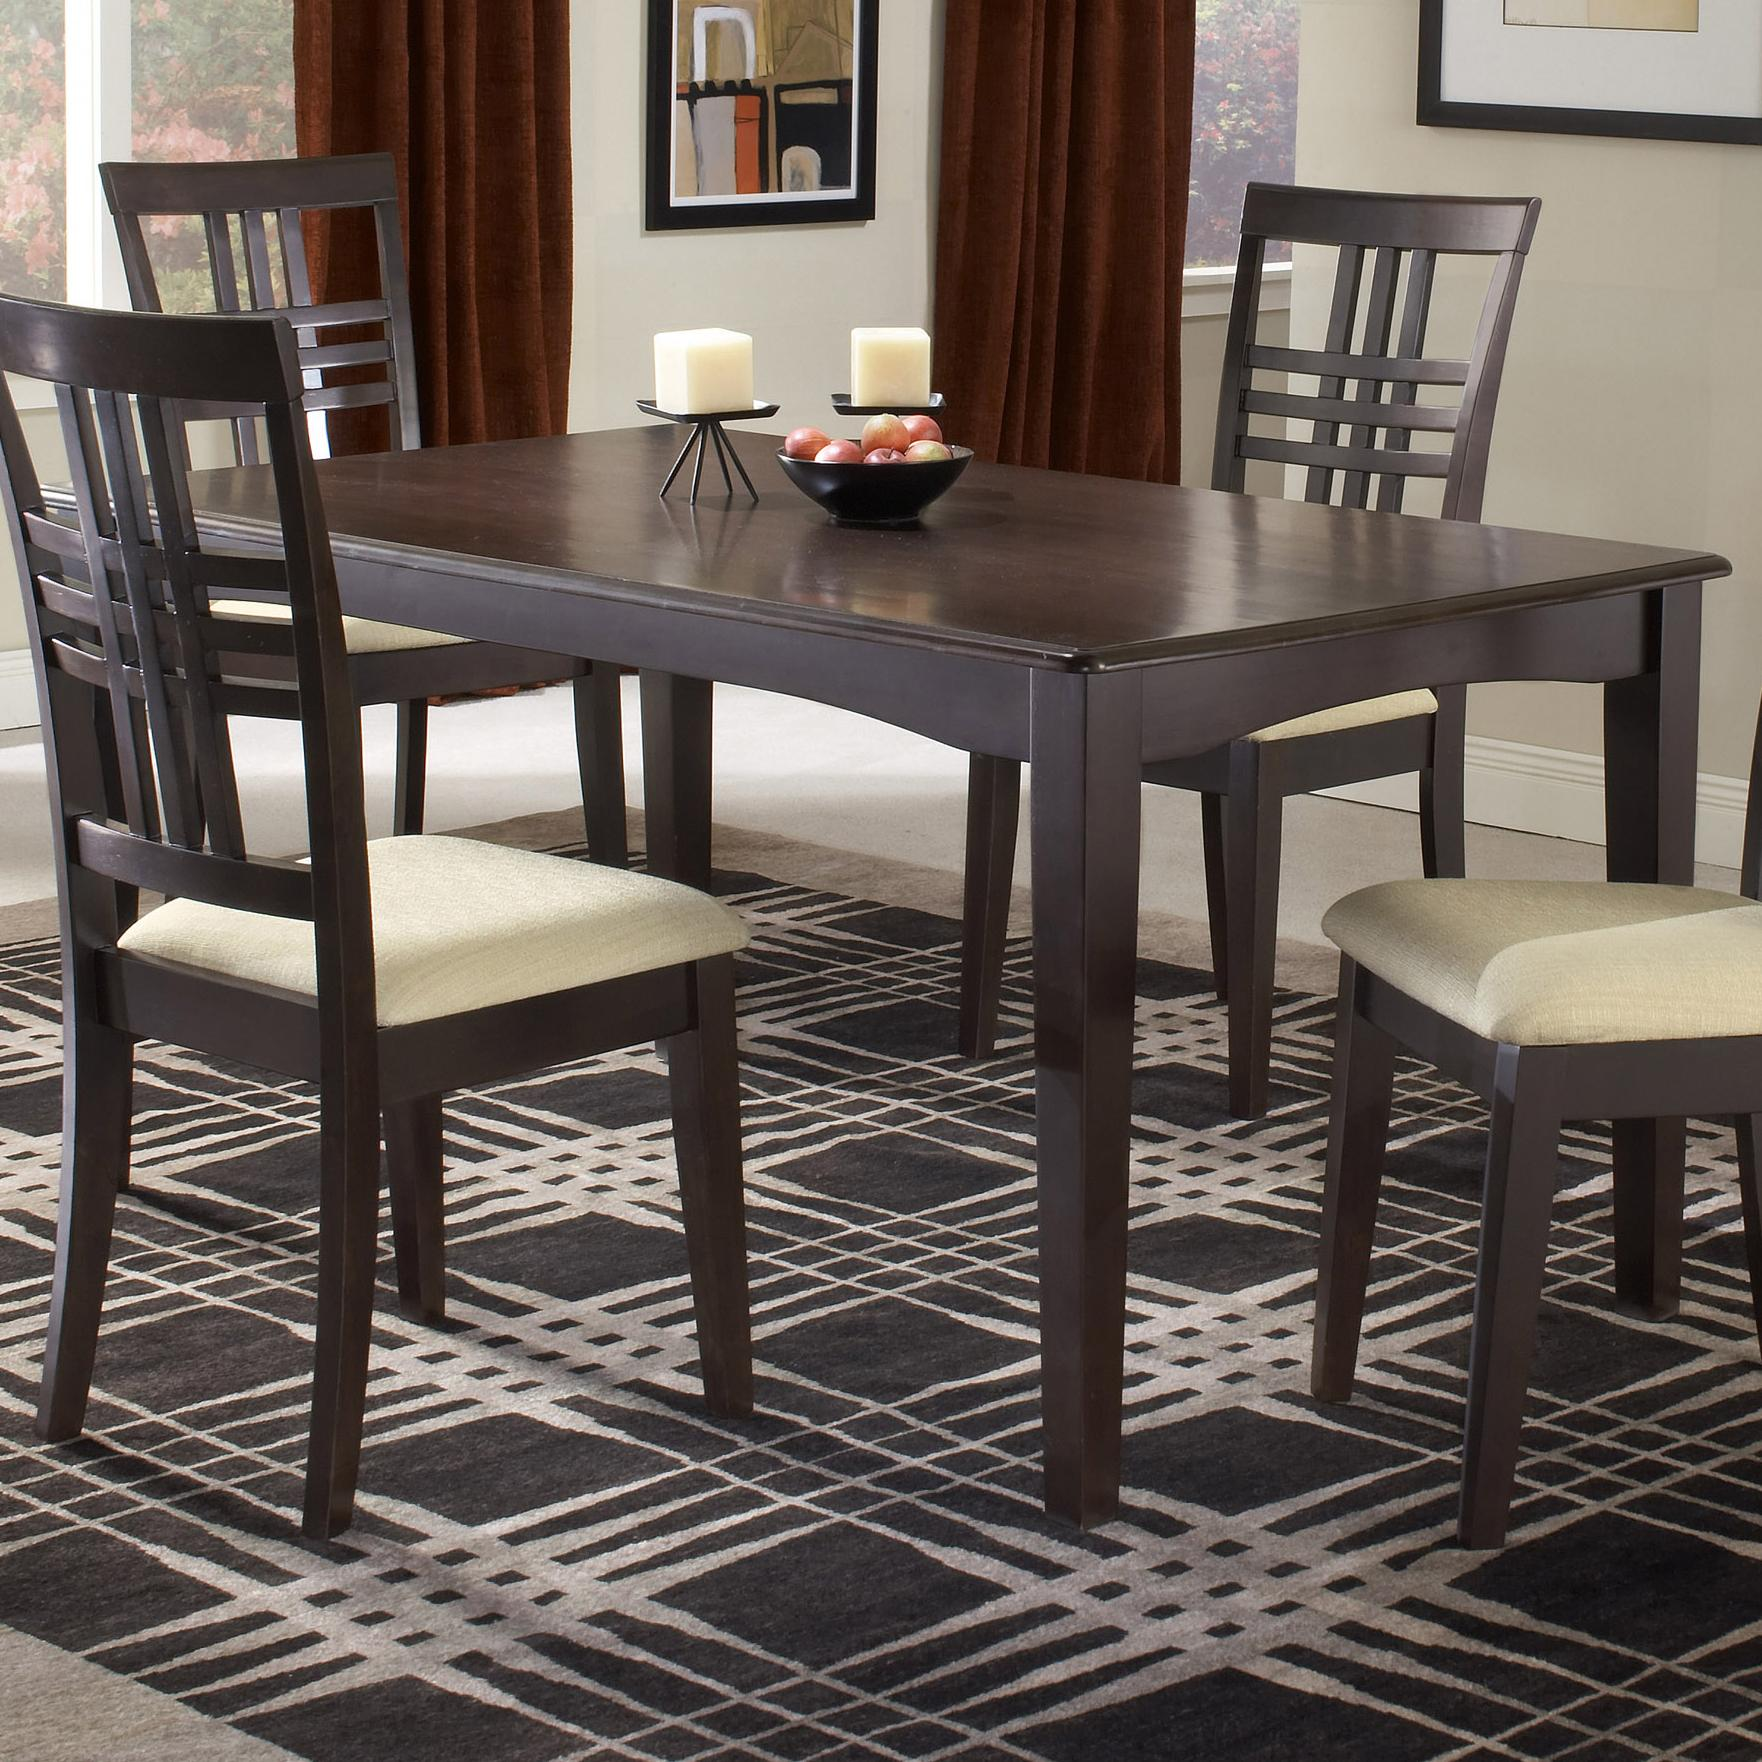 Hillsdale tiburon 4917 814 36 x 60 fix top dining table for Dining room table 60 x 36